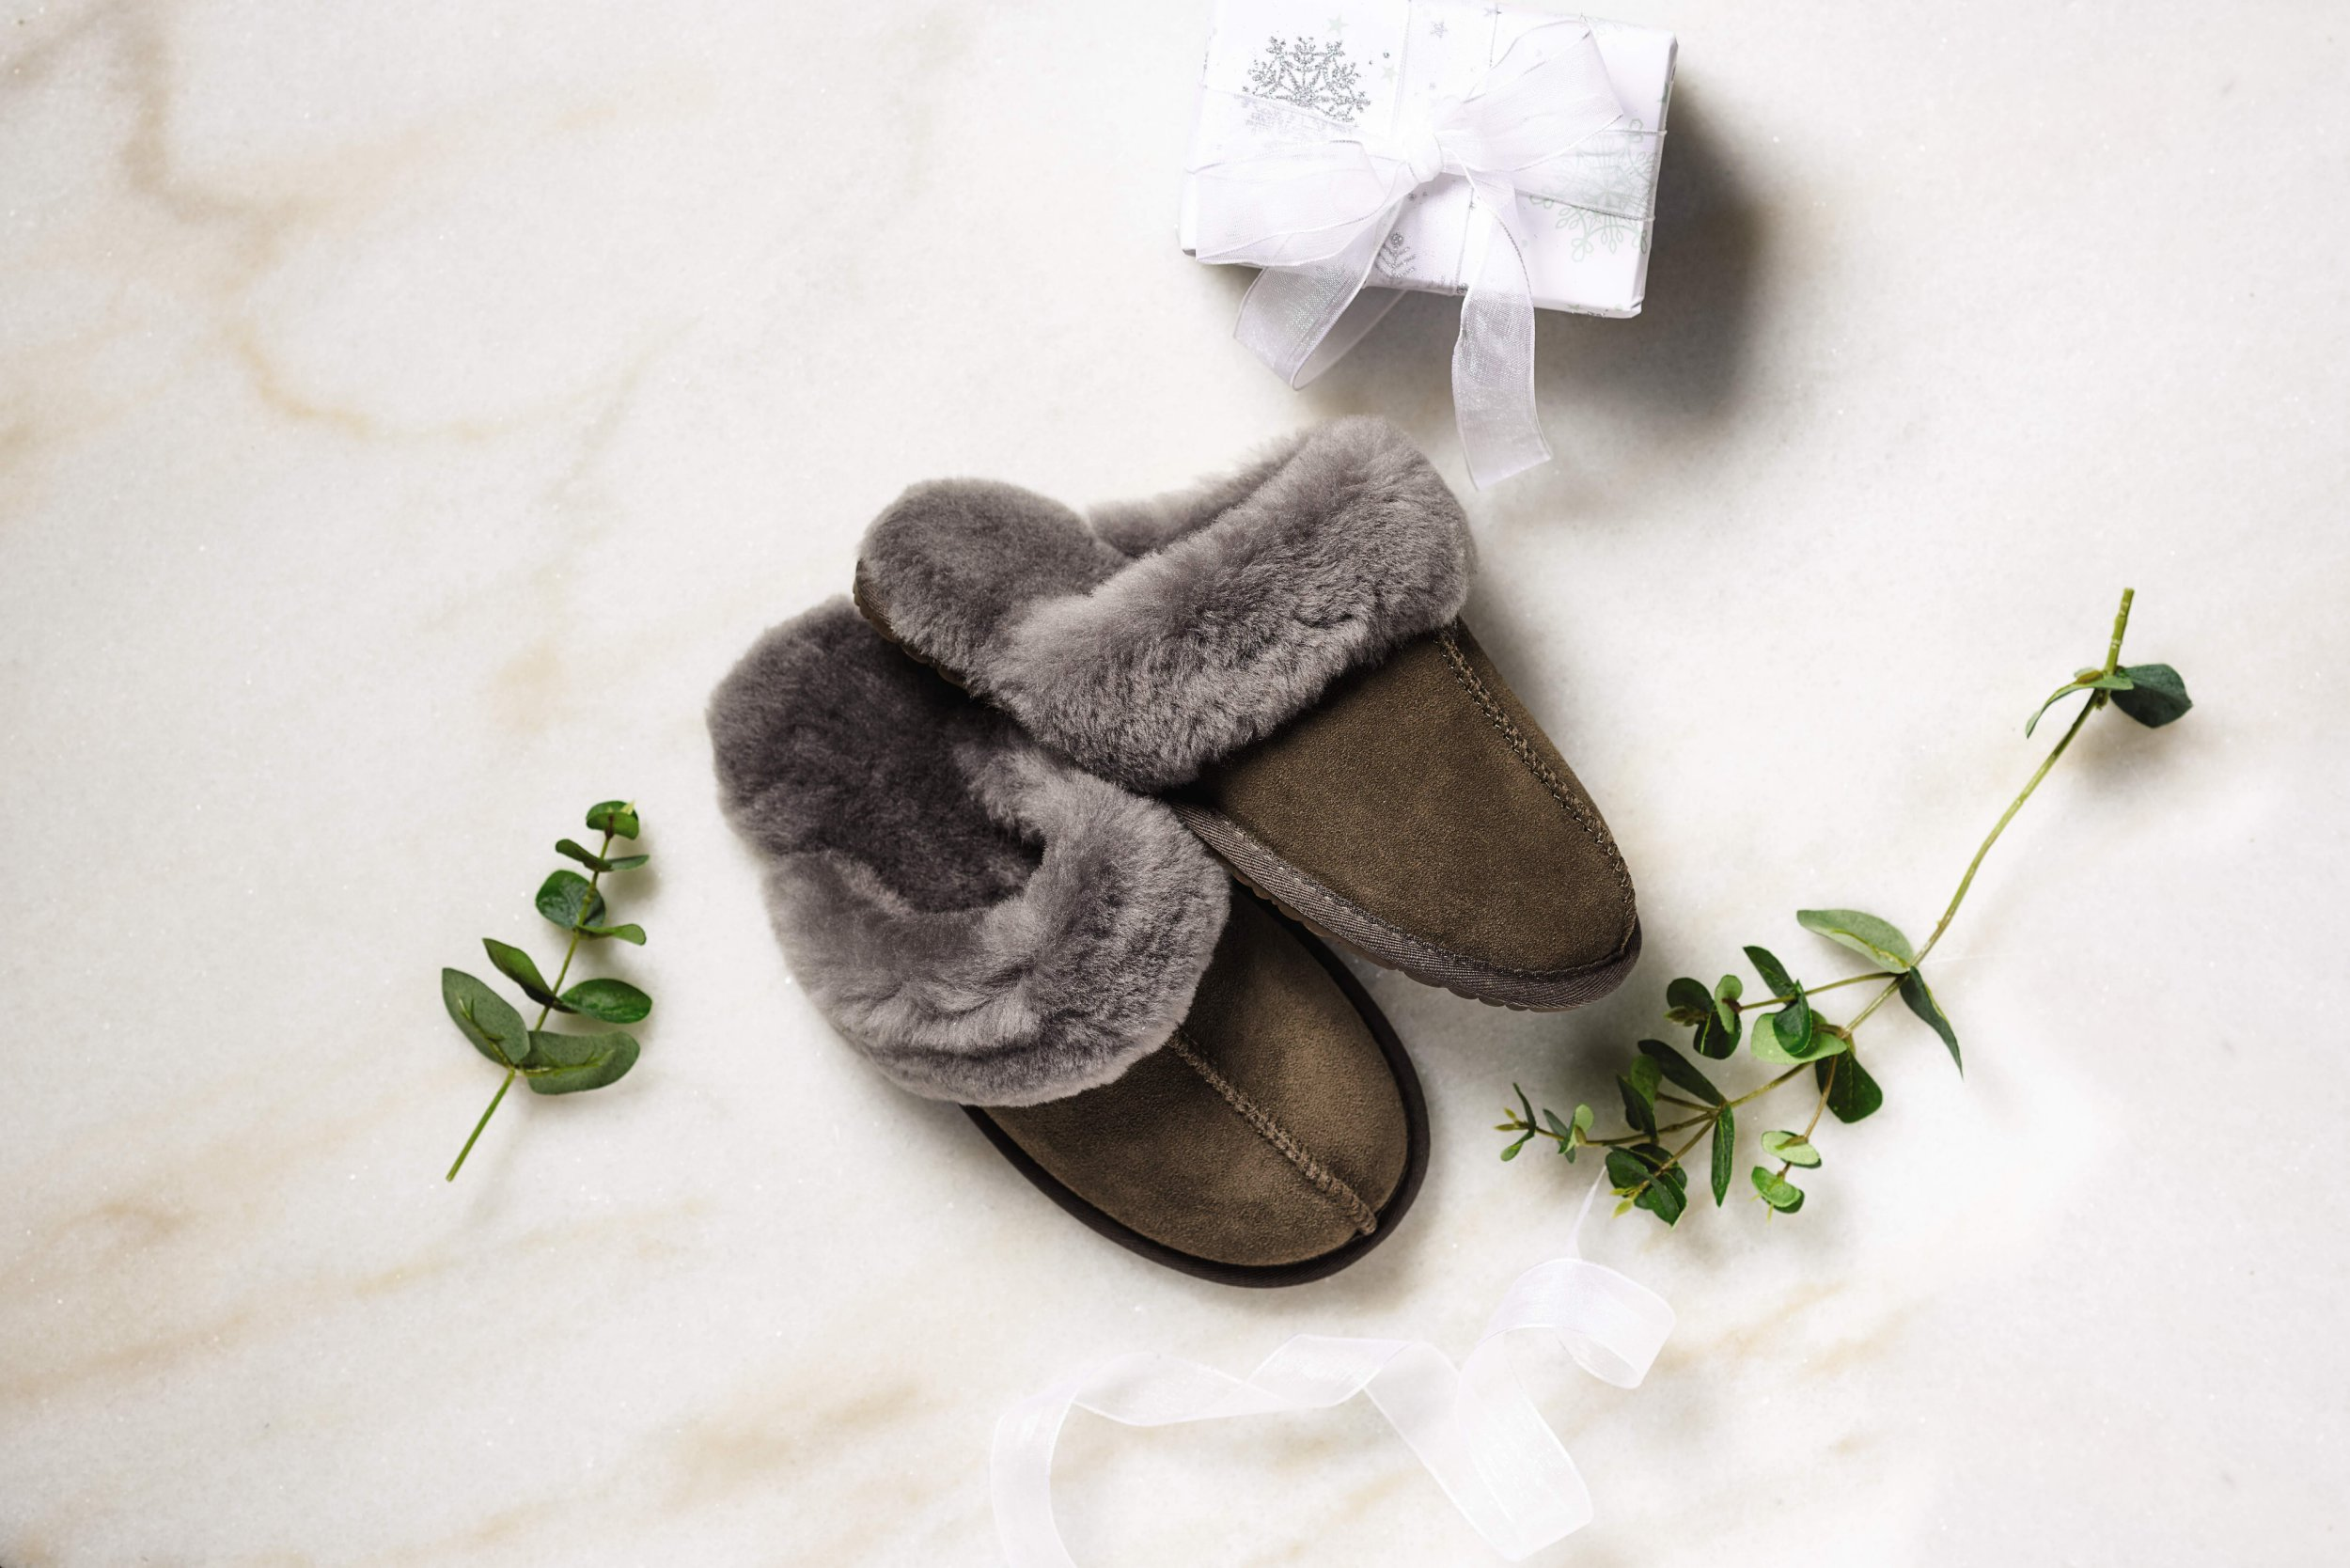 Back by popular demand ??? Aldi restocks Luxury Sheepskin Slippers Aldi???s Luxury Sheepskin Slippers are back by popular demand ??? great news for those that didn???t manage to get hands on them last year. Perfect for a toasty night in, these stylish Men's/Ladies??? Sheepskin Slippers (??15.99) feature a super soft sheepskin lining and supportive rubber sole, so fashion-lovers can relax in style and give tired feet a break. The slippers are part of Aldi???s wider Stylish Gifts range, available to pre-order online from 18th November and purchase in stores nationwide from 22nd November, but shoppers will need to be quick, as with all Specialbuys, once it???s gone, it???s gone! For further information or images, please contact the Aldi Specialbuys team on: aldispecialbuys@clarioncomms.co.uk 020 7479 0910 ENDS